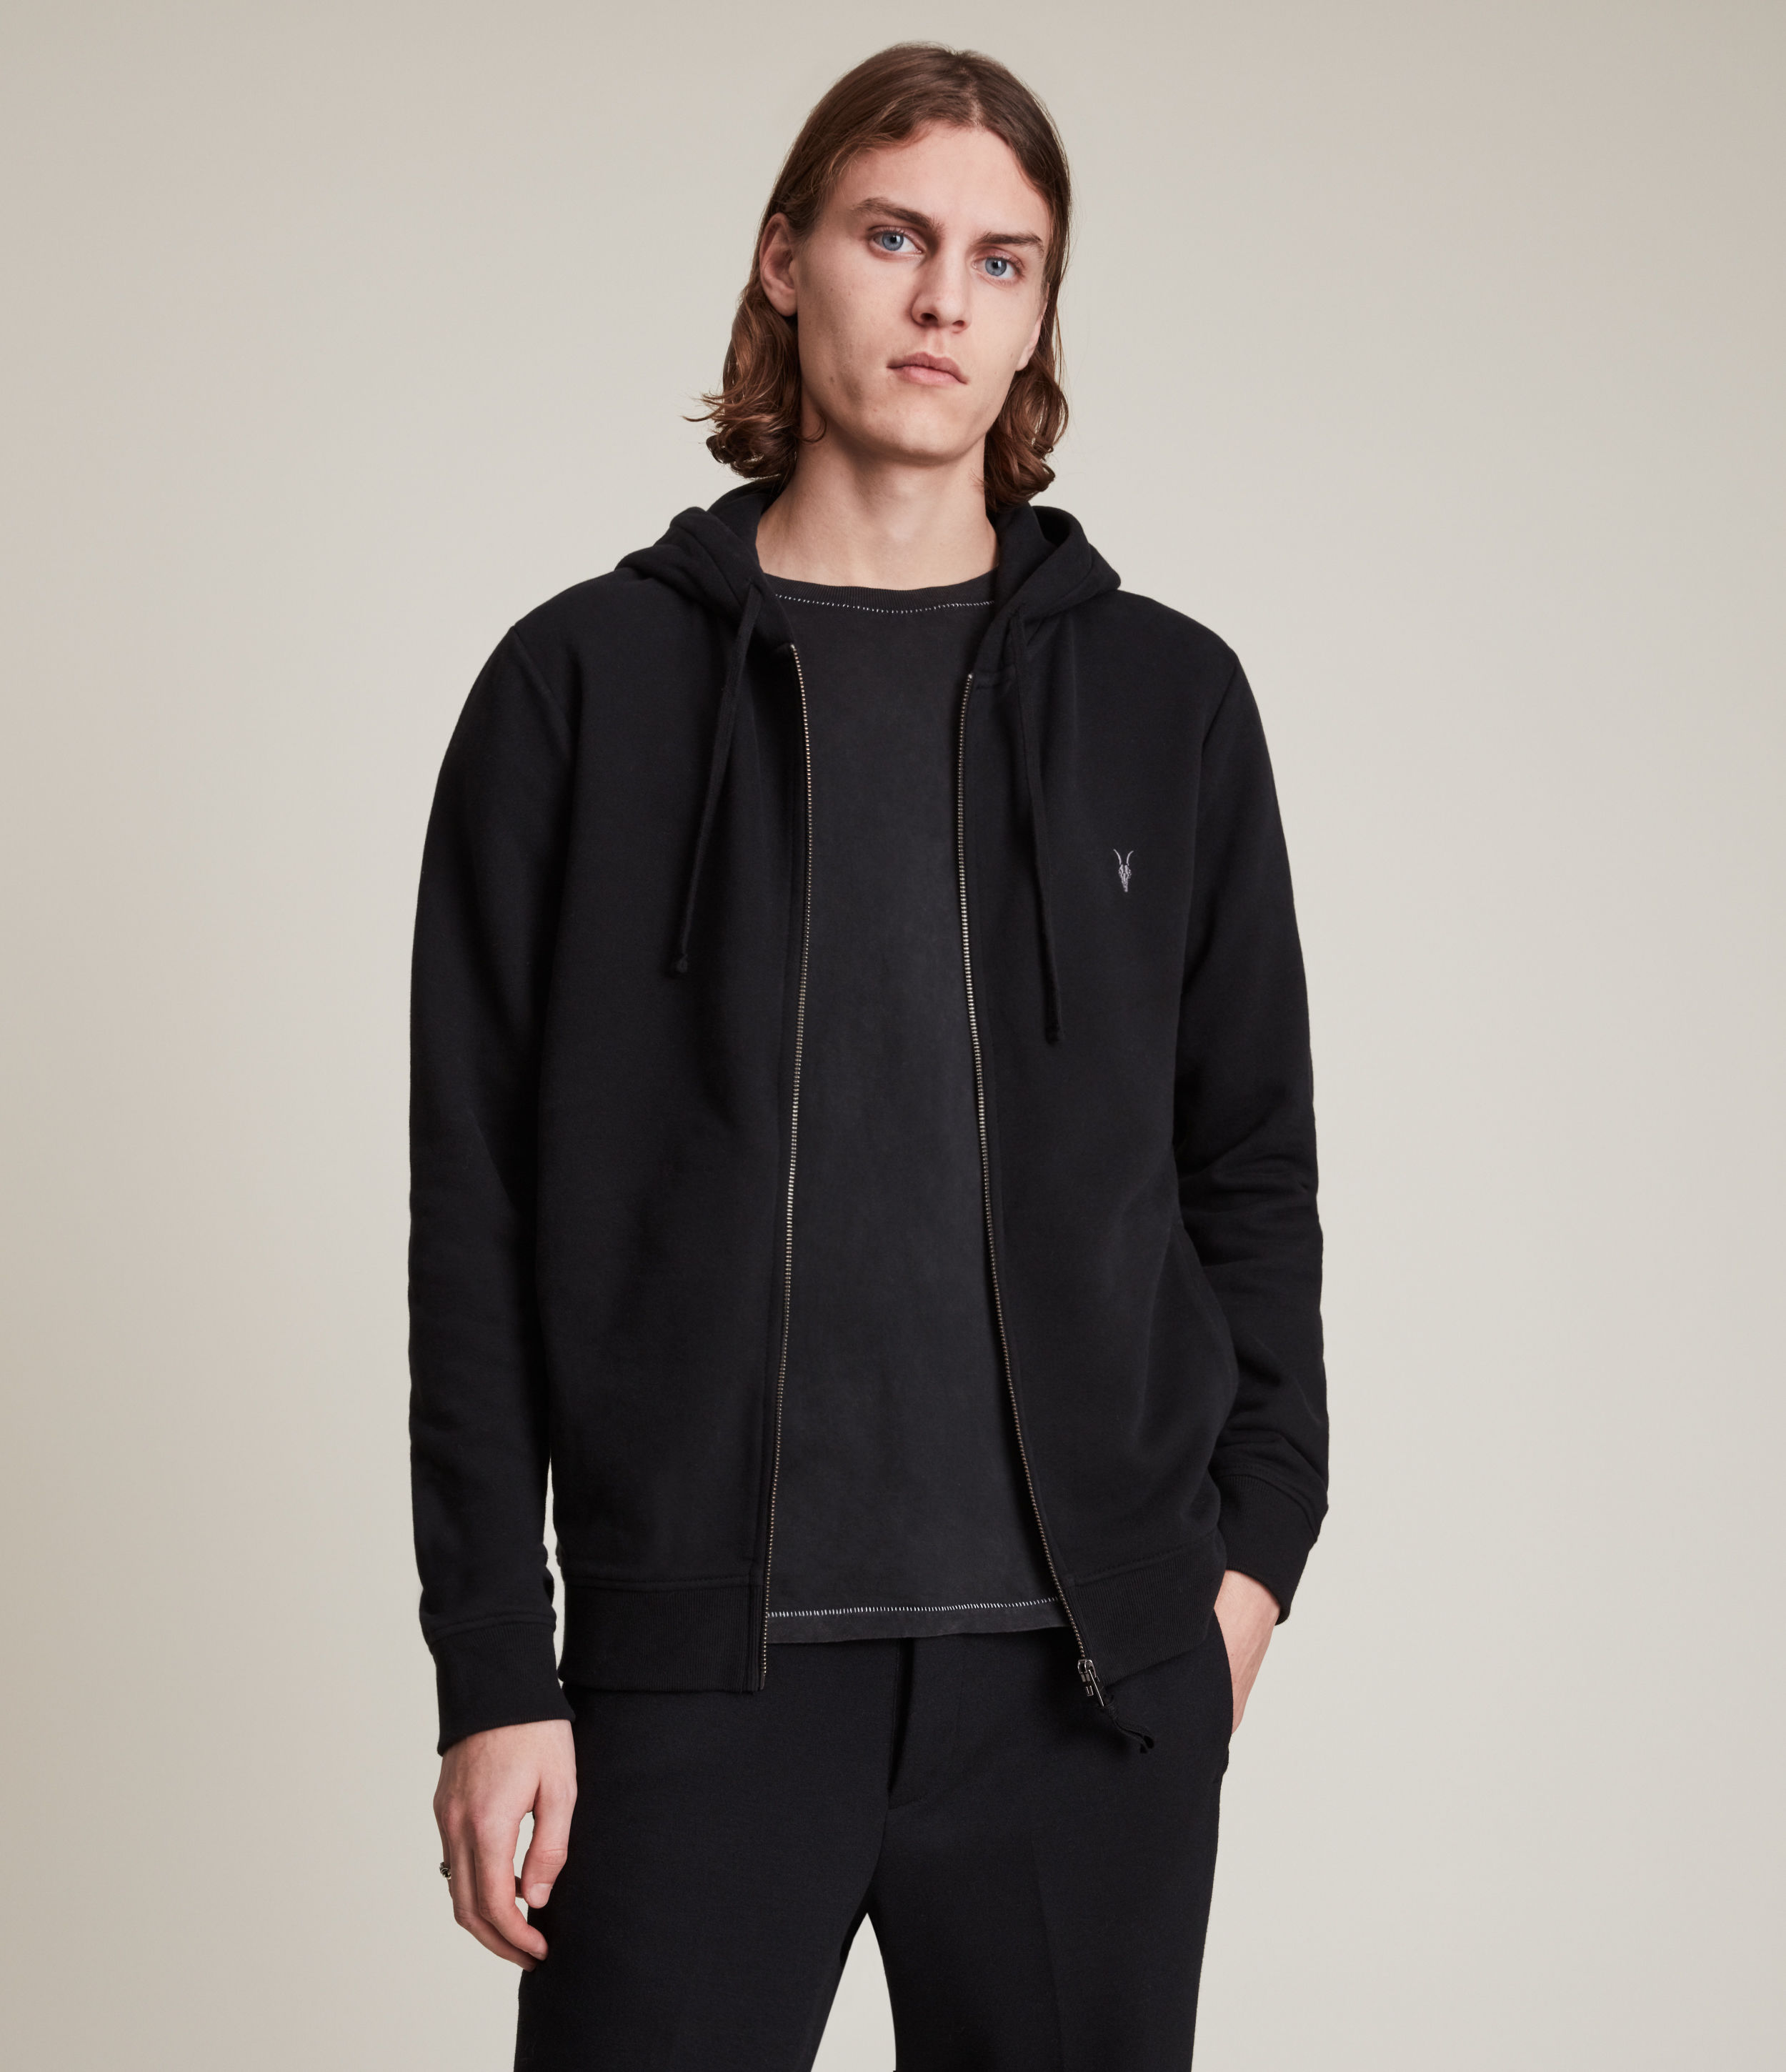 AllSaints Men's Cotton Slim Fit Raven Hoodie, Black, Size: M